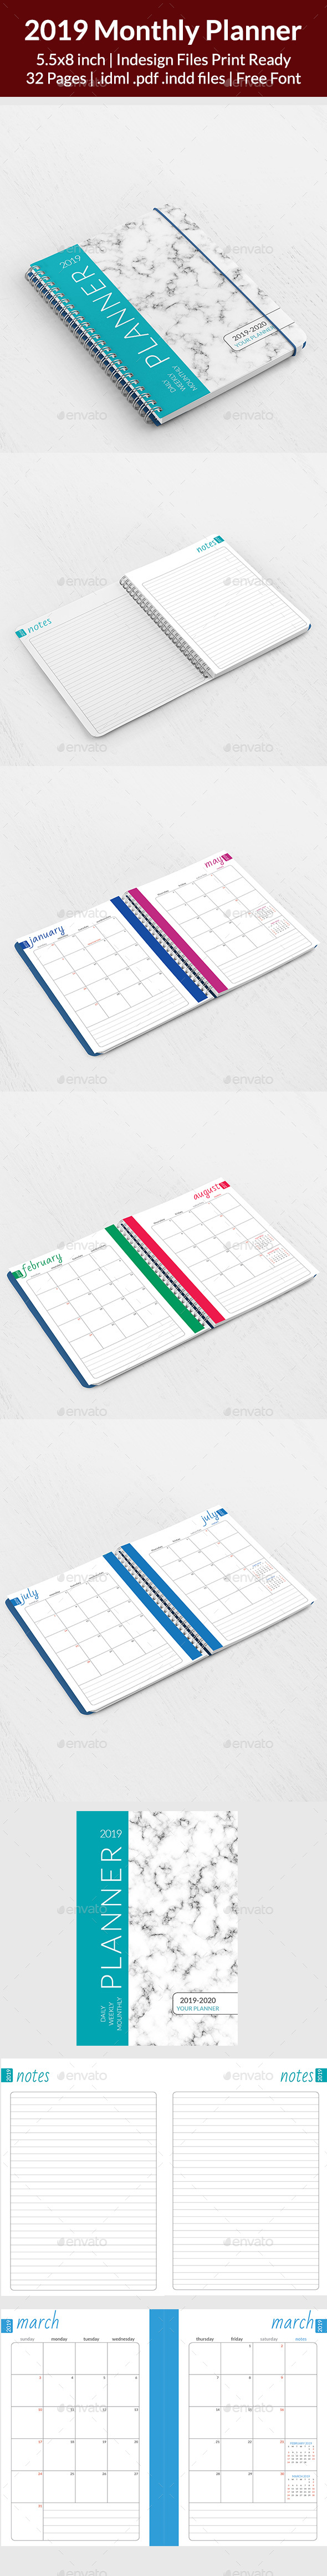 2019 Monthly Planner - Calendars Stationery